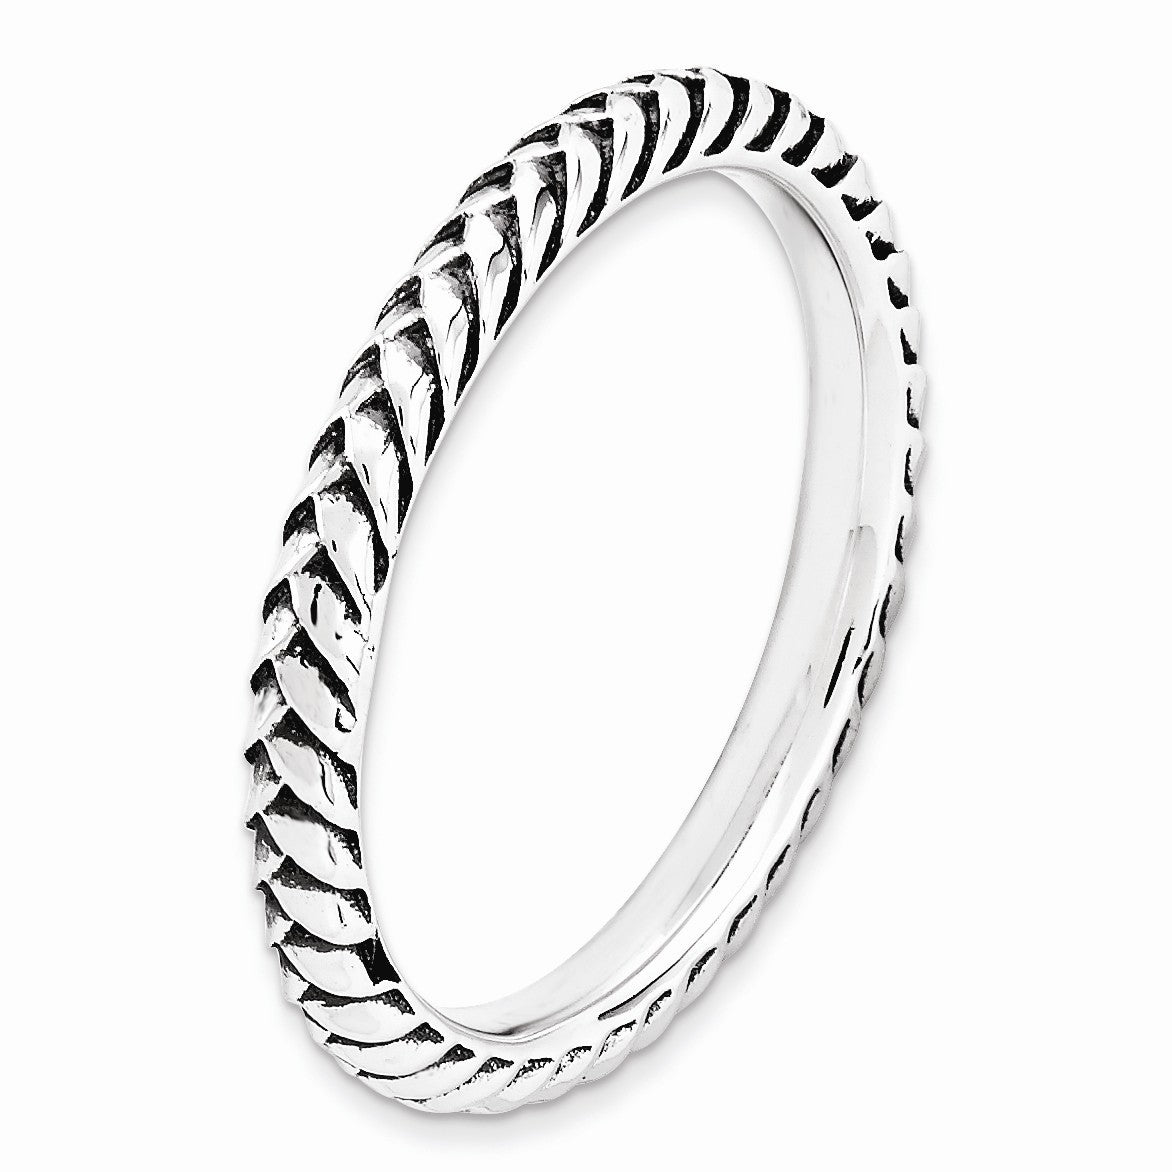 Alternate view of the 2.5mm Sterling Silver Stackable Antiqued Wheat Band by The Black Bow Jewelry Co.